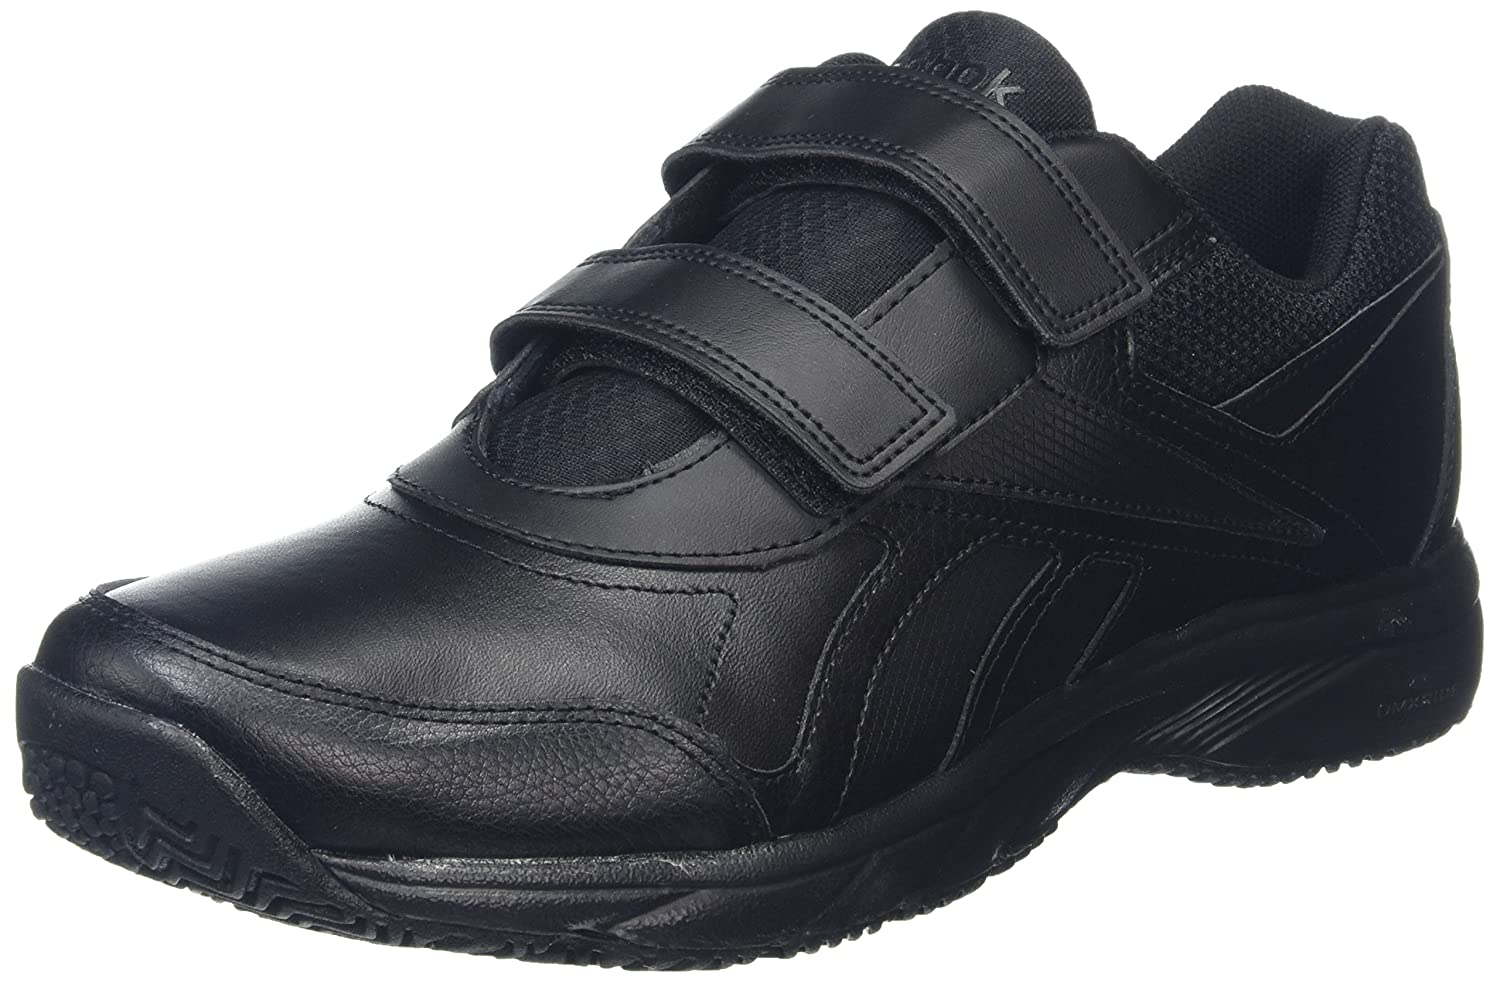 Reebok Herren Work N Cushion KC 2.0 Sneakers  44.5 EU|Black (Schwarz / Schwarz)